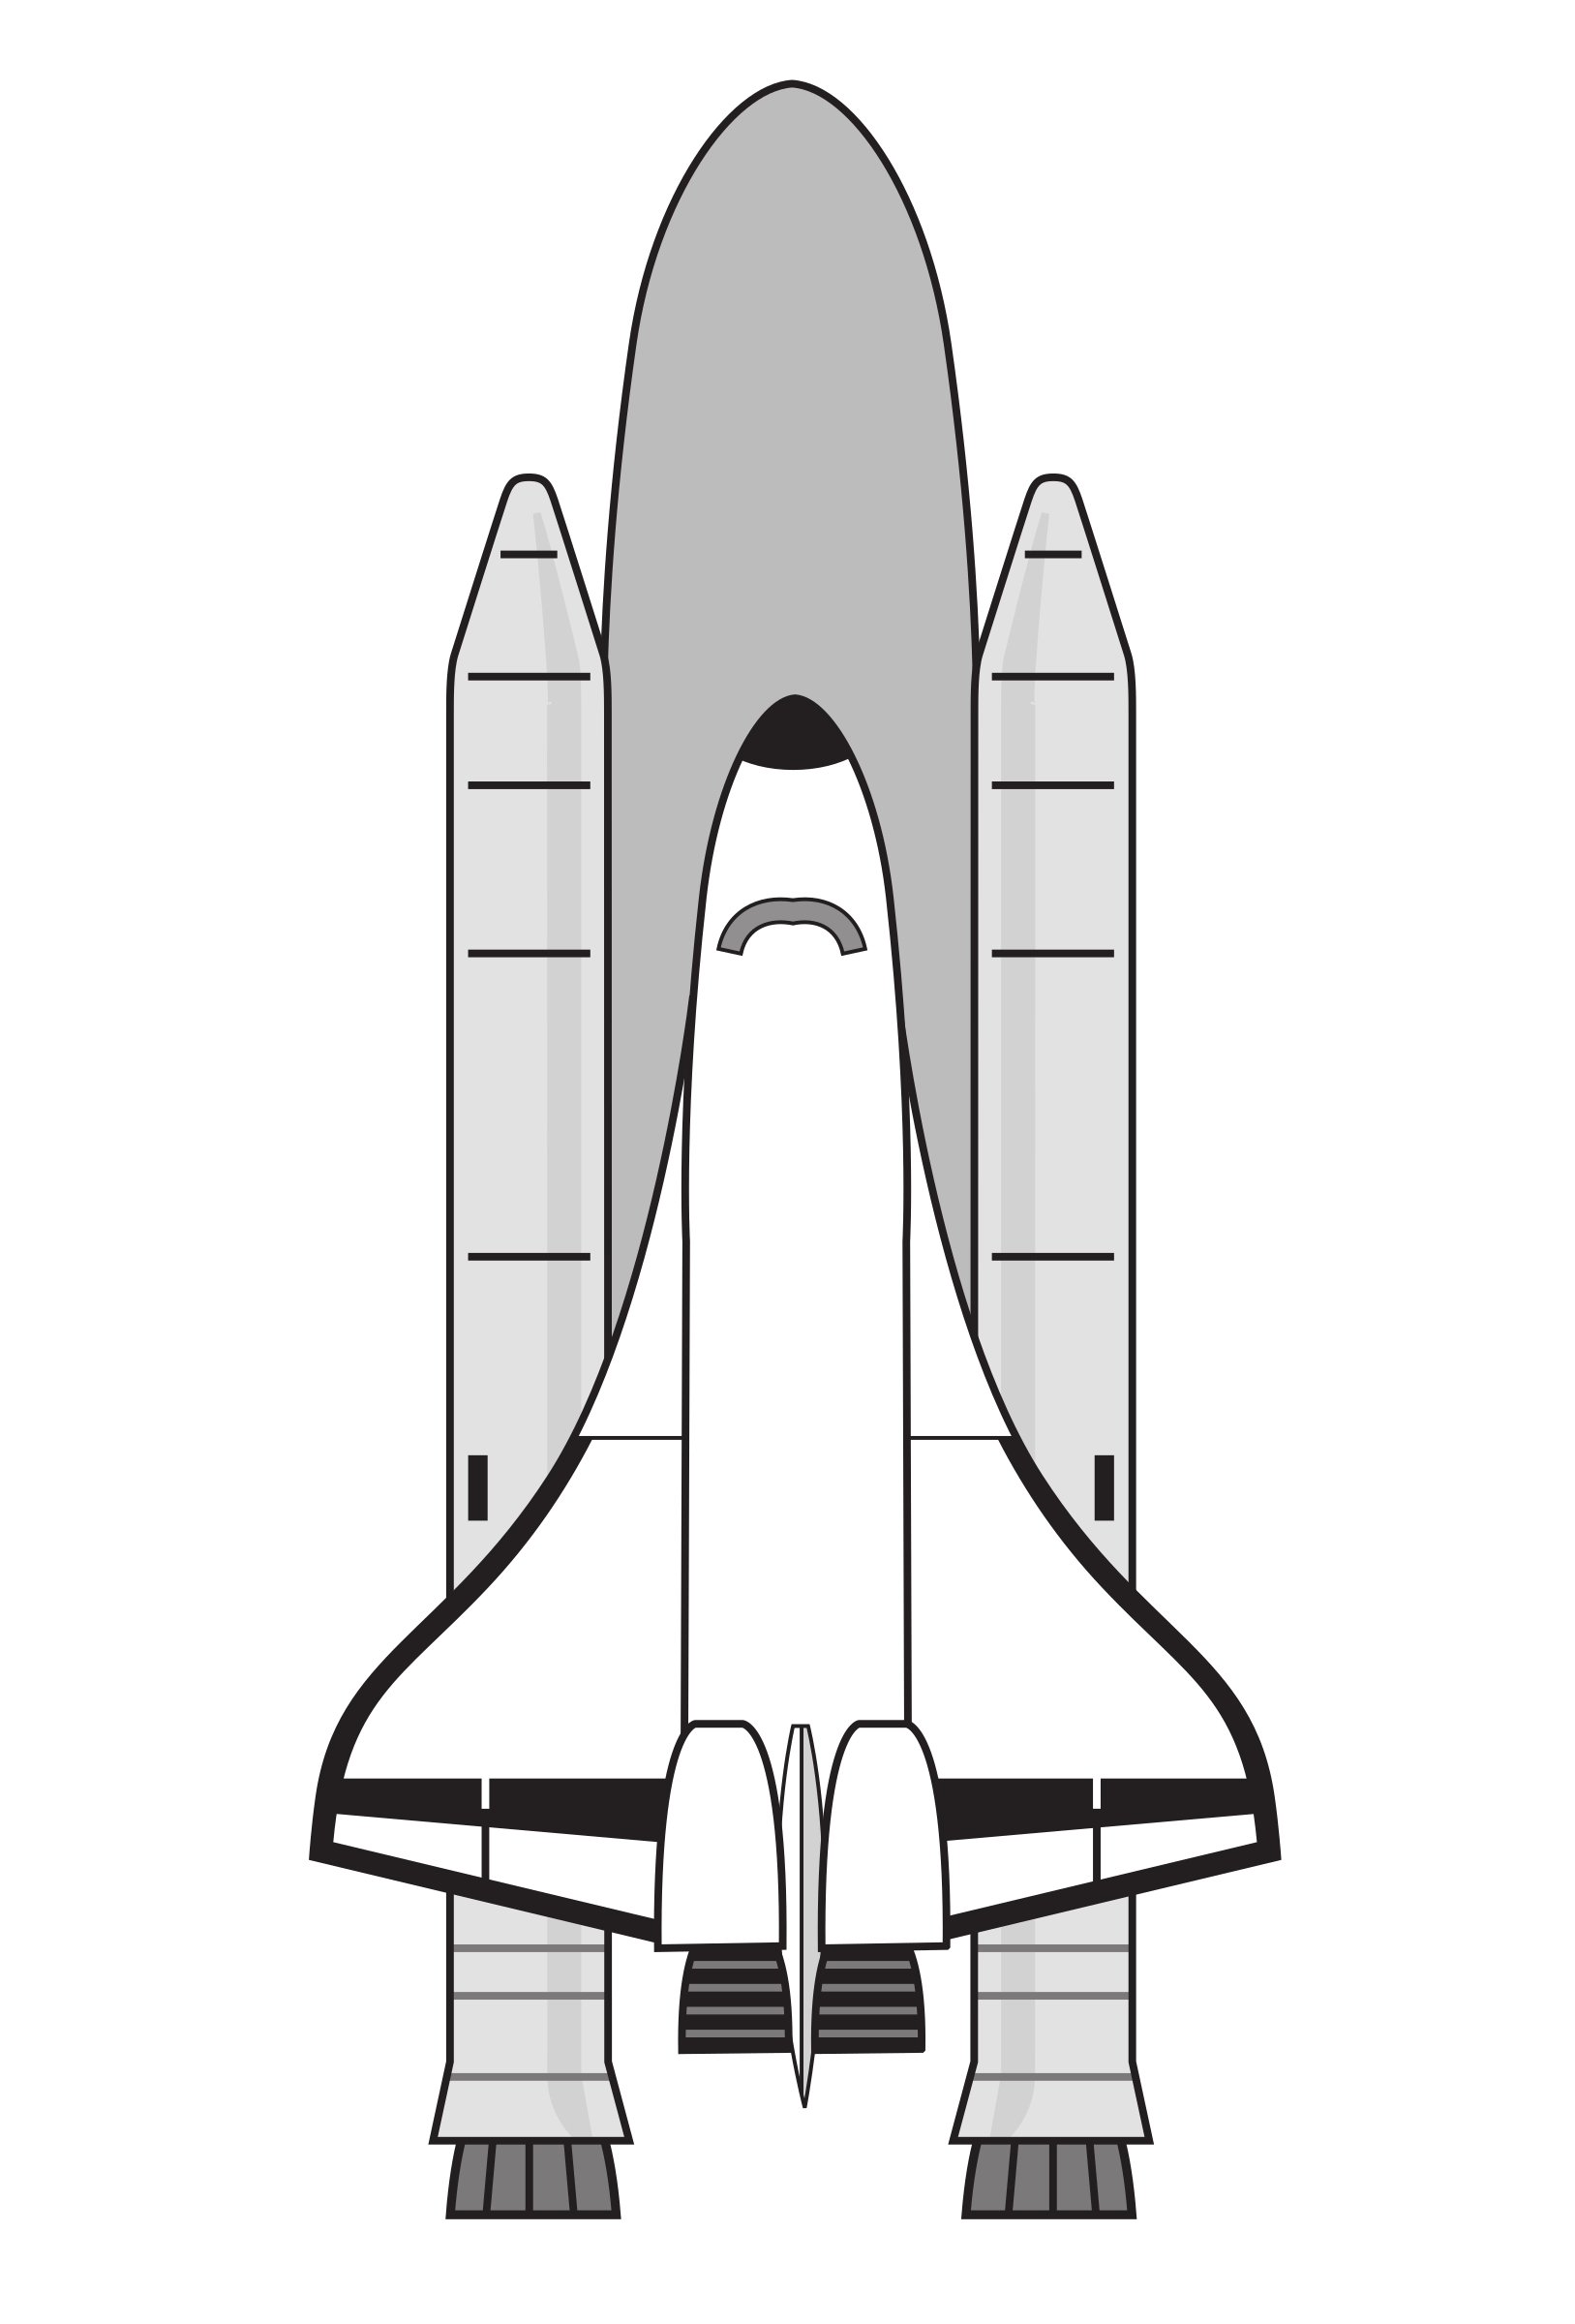 Space shuttle clipart black and white 3 » Clipart Portal.